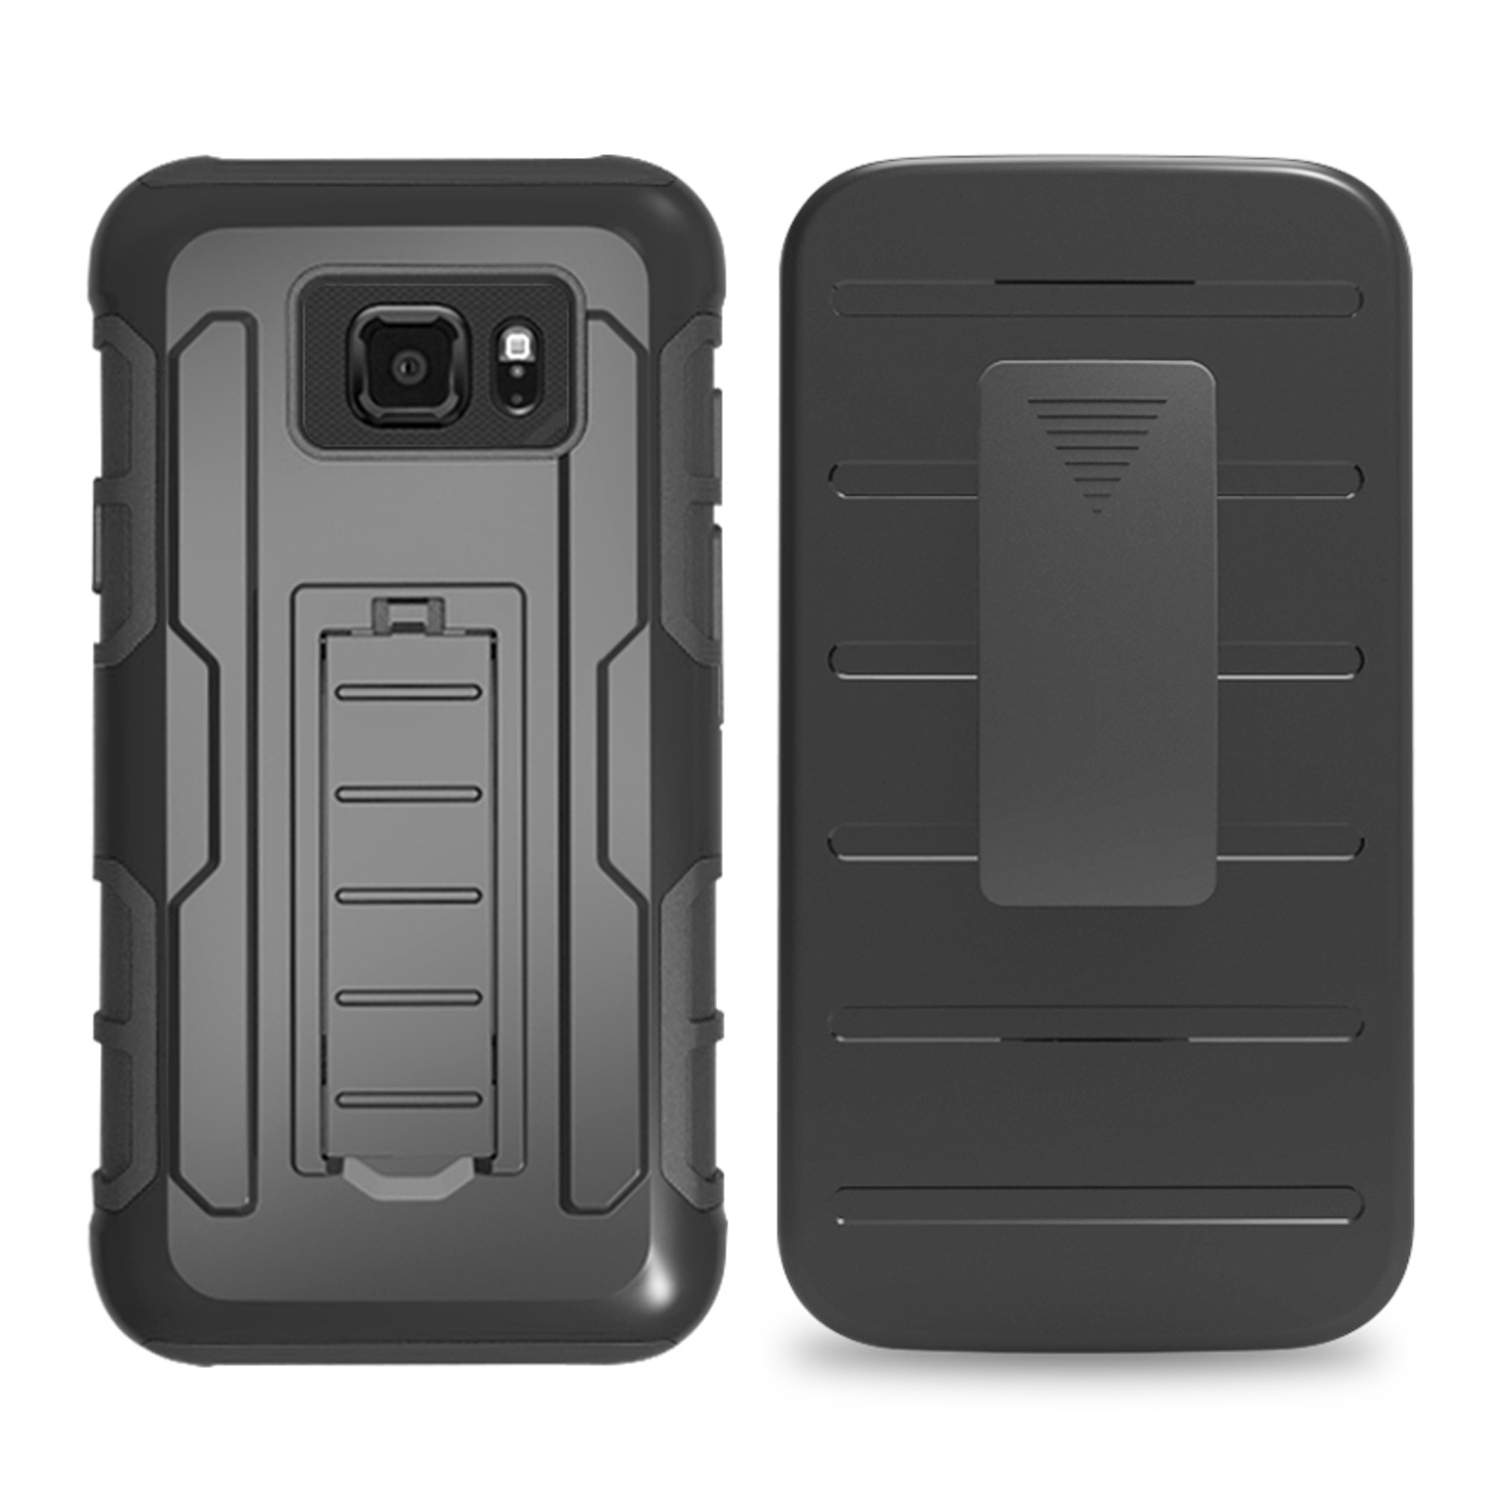 Or rugged holster belt clip cover hard case for samsung galaxy s7 active g891 p20160621145430641